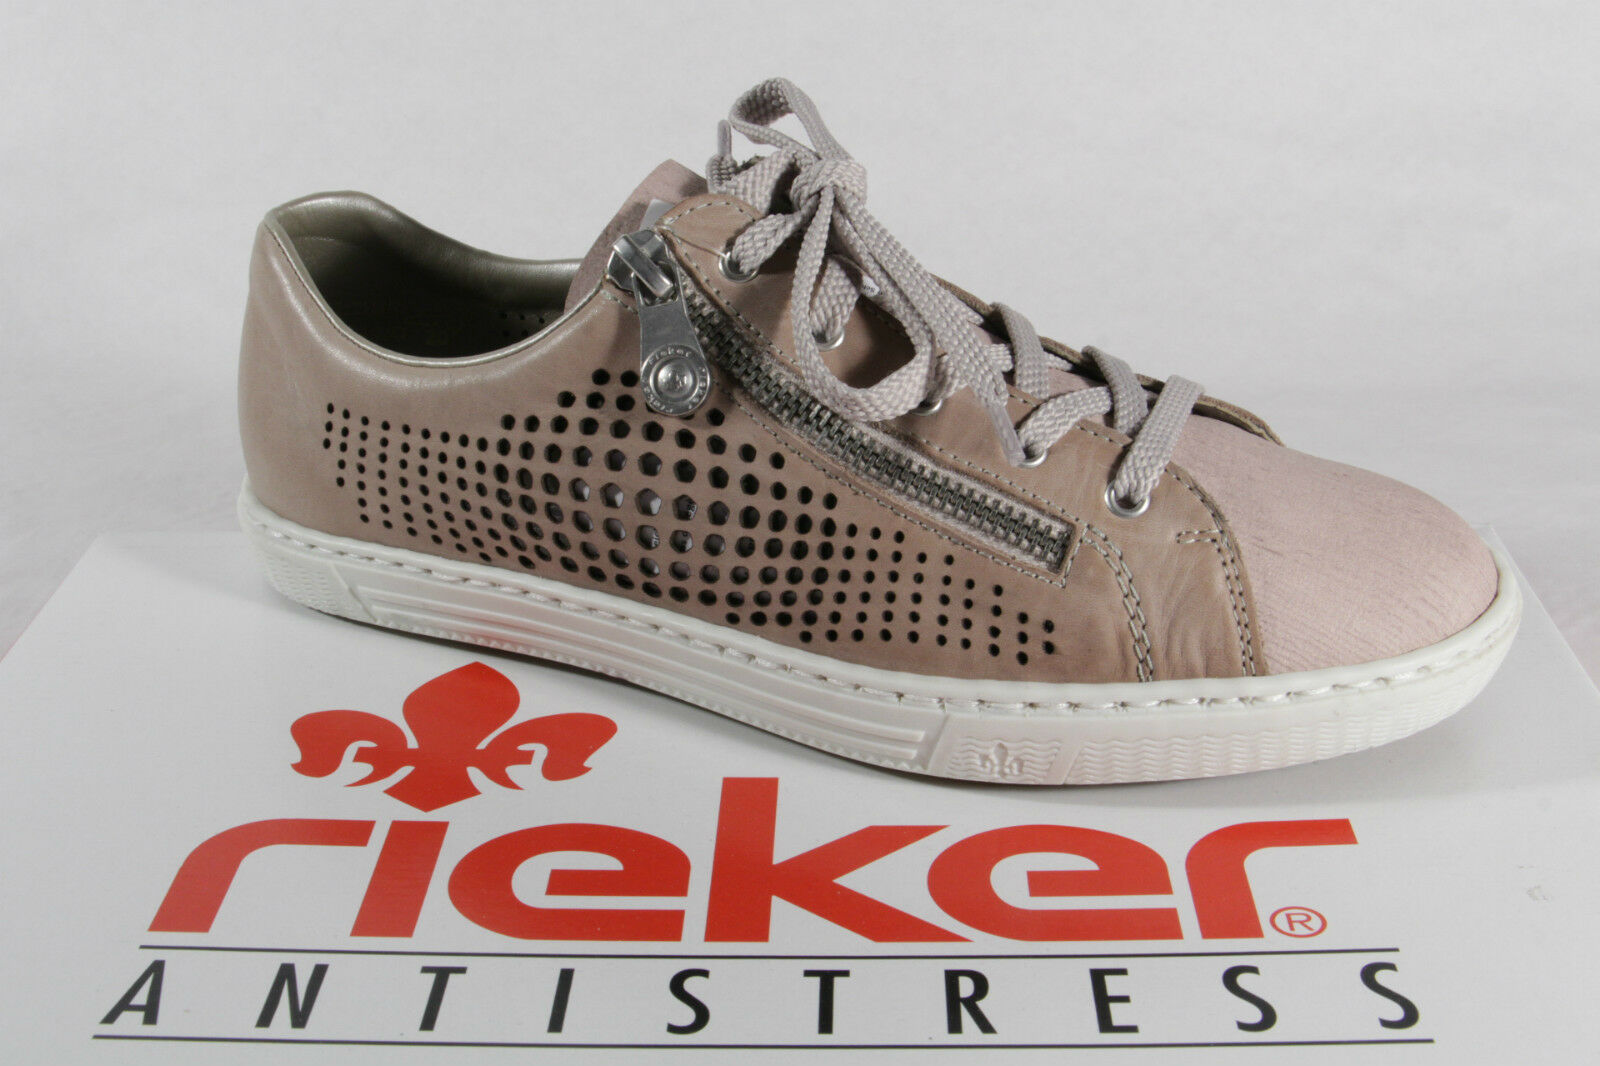 Rieker Women's Lace-Up shoes, Low shoes, Trainers Faux Leather Beige pink New